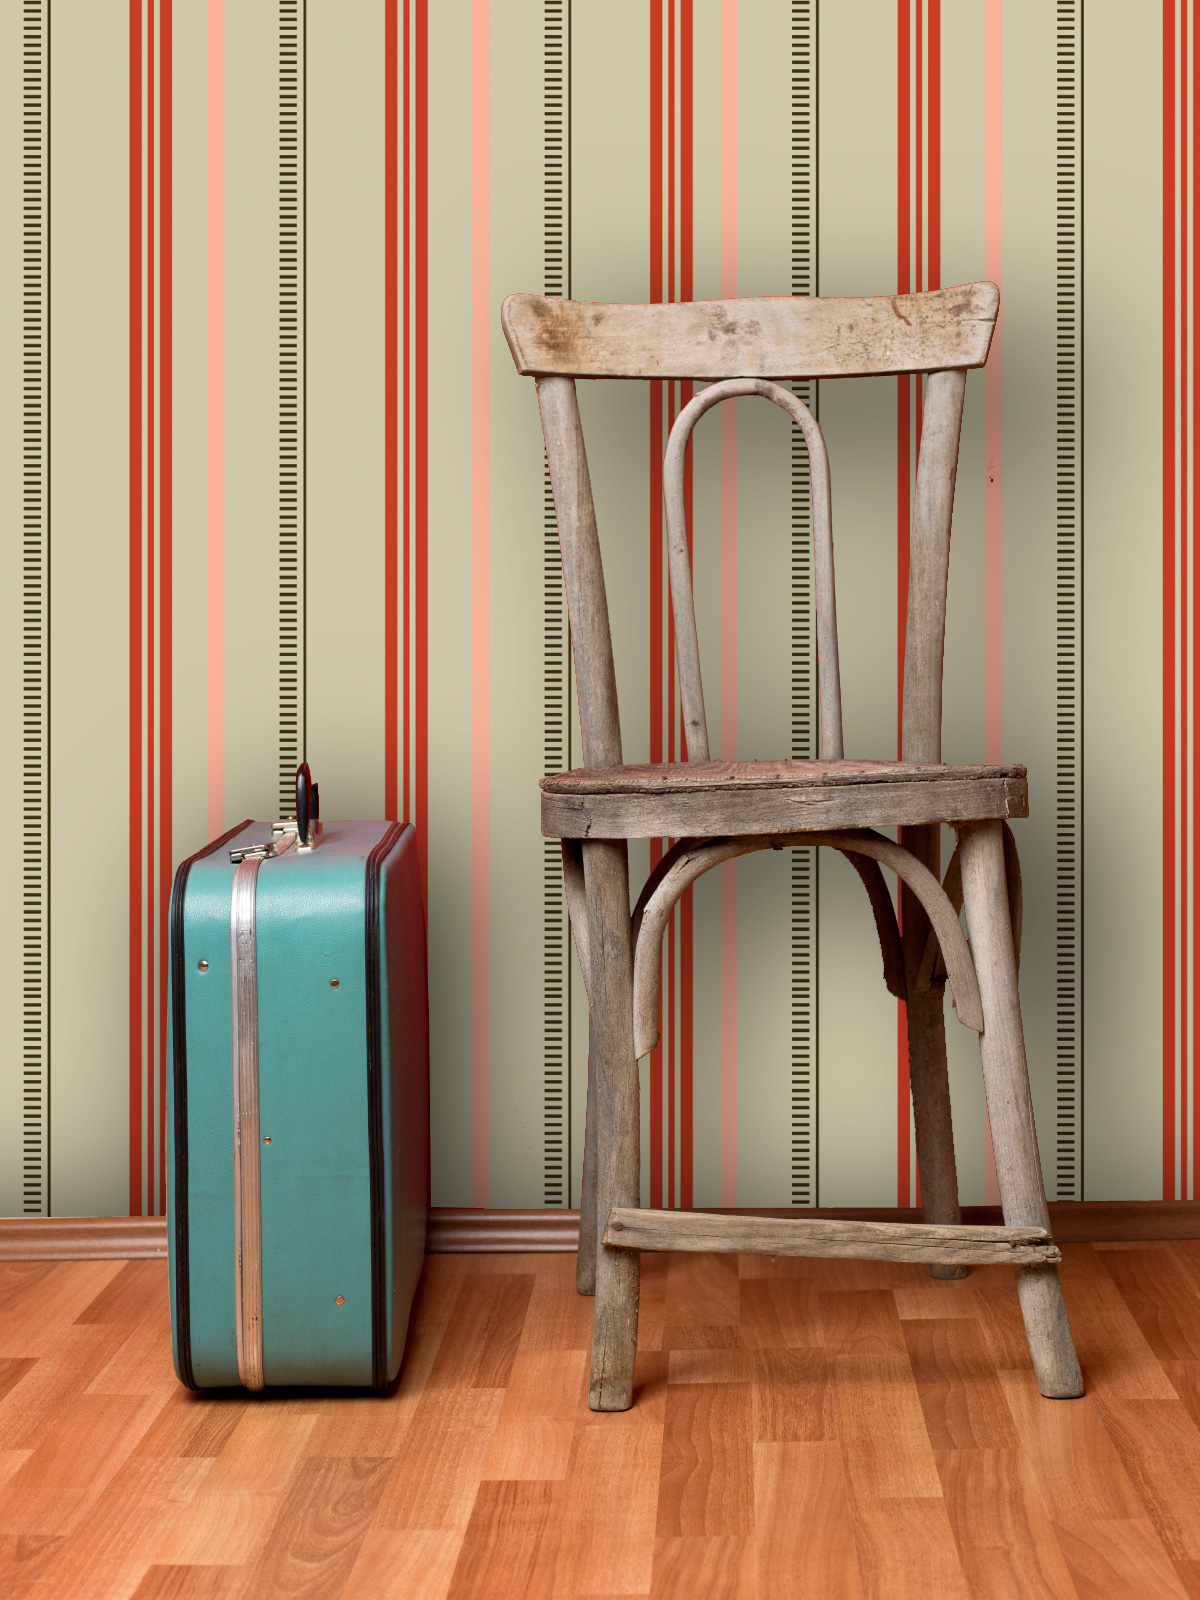 Suitcase-and-Wood-Chair-LITTLE-STANLEY-buff.jpg